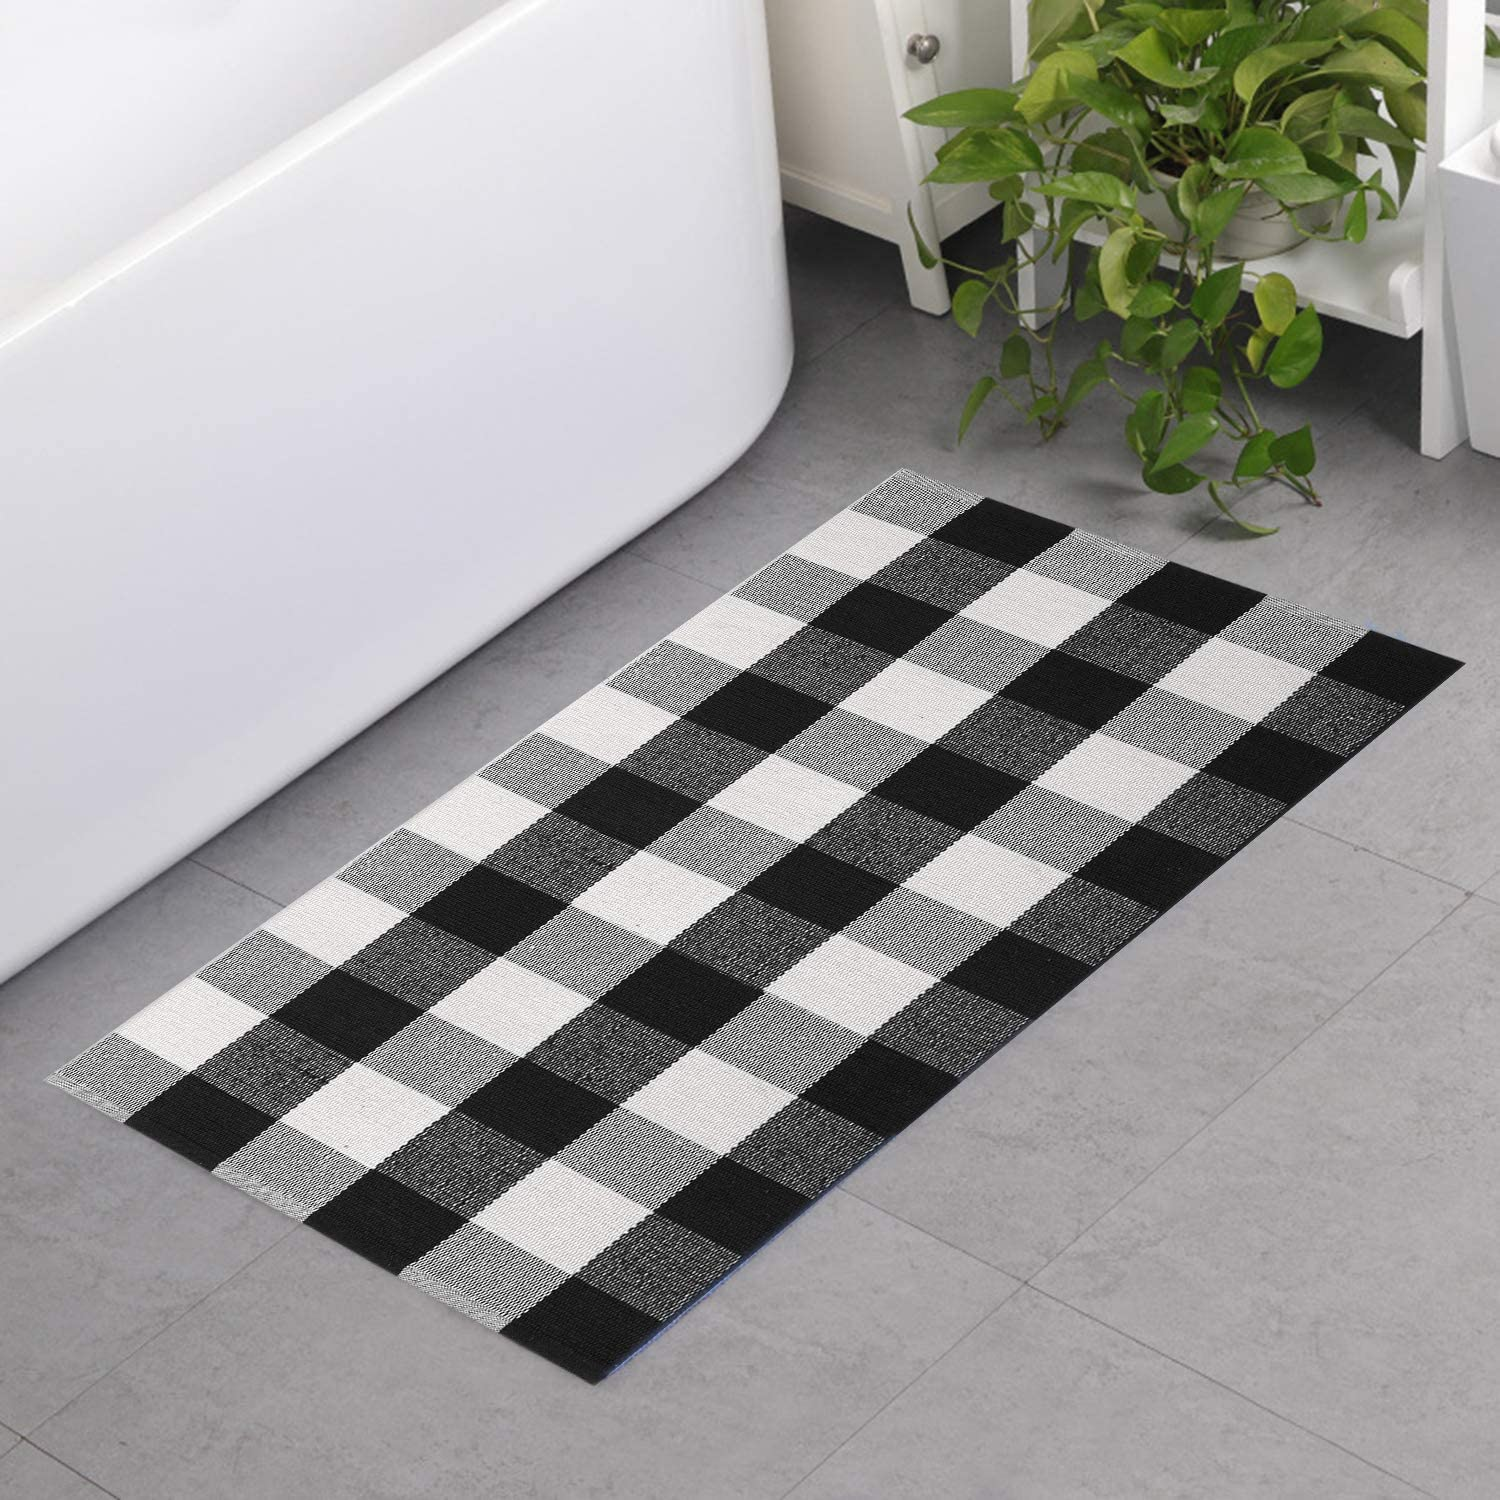 MUBIN Buffalo Plaid Check Runner Rug Reversible 2 x 4 ft Cotton Black and White Checkered Washable Rug for Kitchen/Laundry/Bedroom/Bathroom/Entry (2' x 4', Black&White)